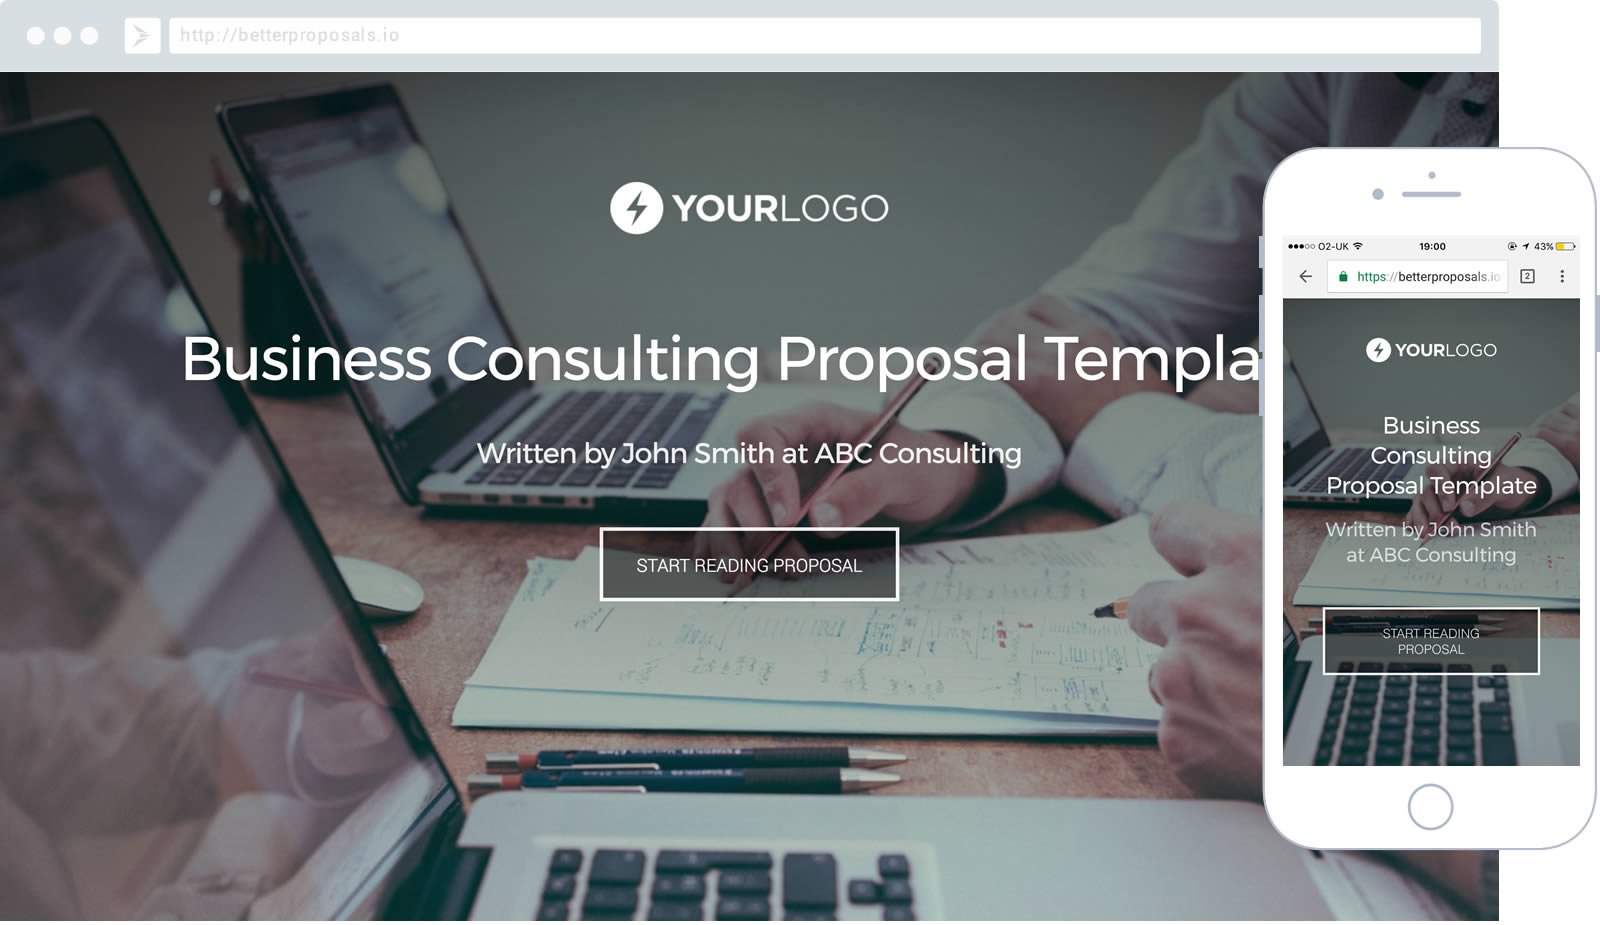 Business consulting proposal template better proposals business consulting proposal template proposal template for any consultant helping to improve businesses wajeb Images